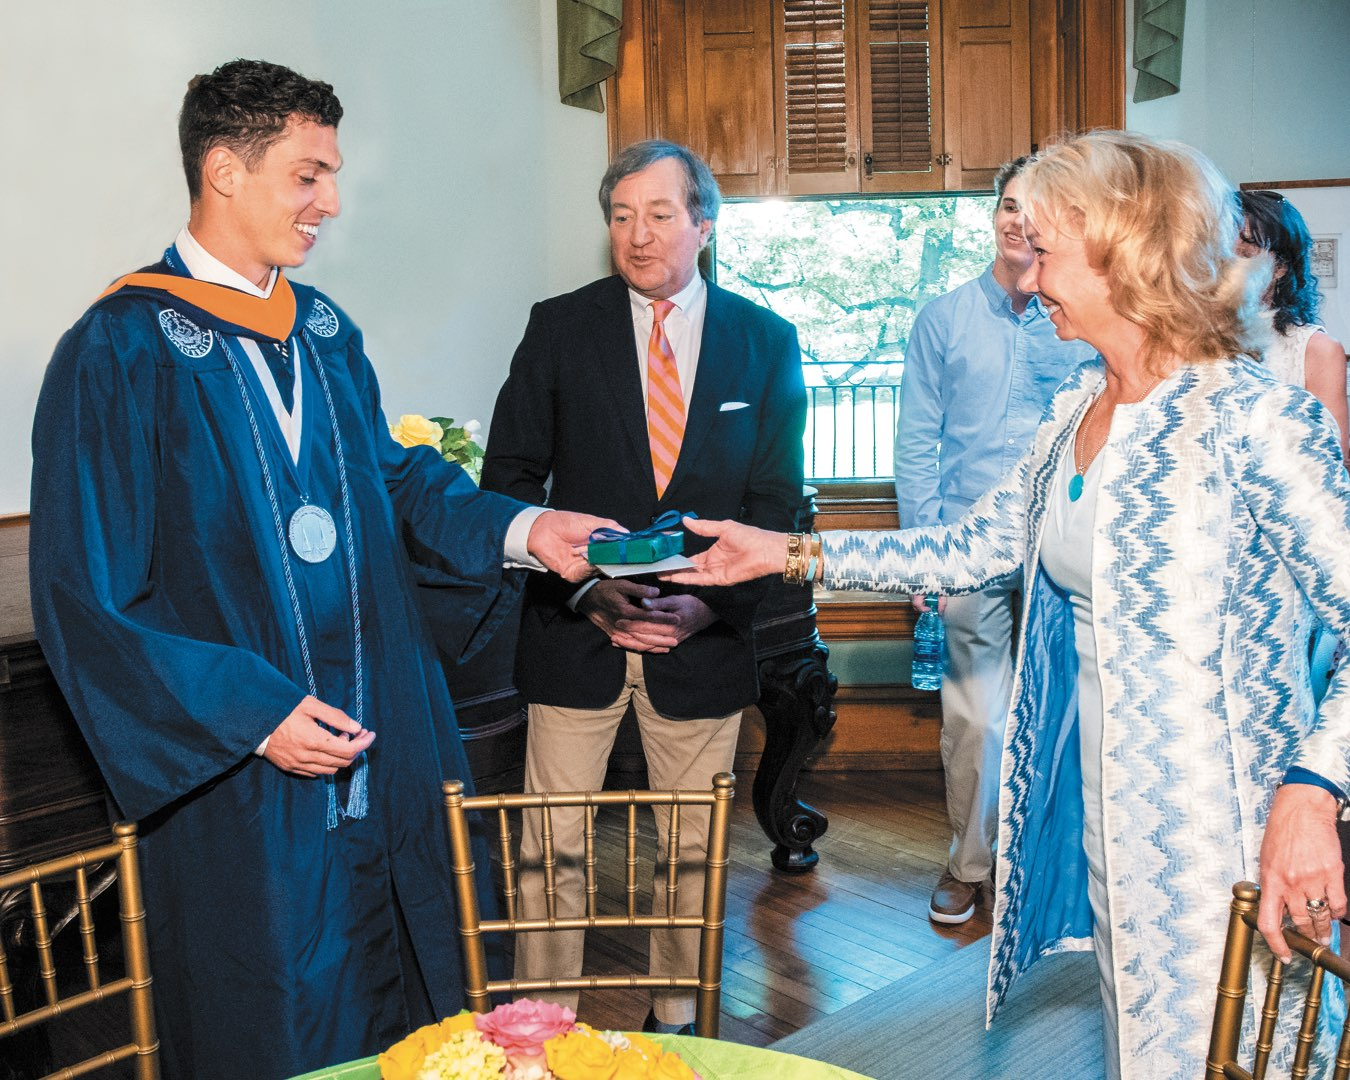 Wearing his regalia, Alex Alberi receives a graduation gift from Polly and Terry O'Toole